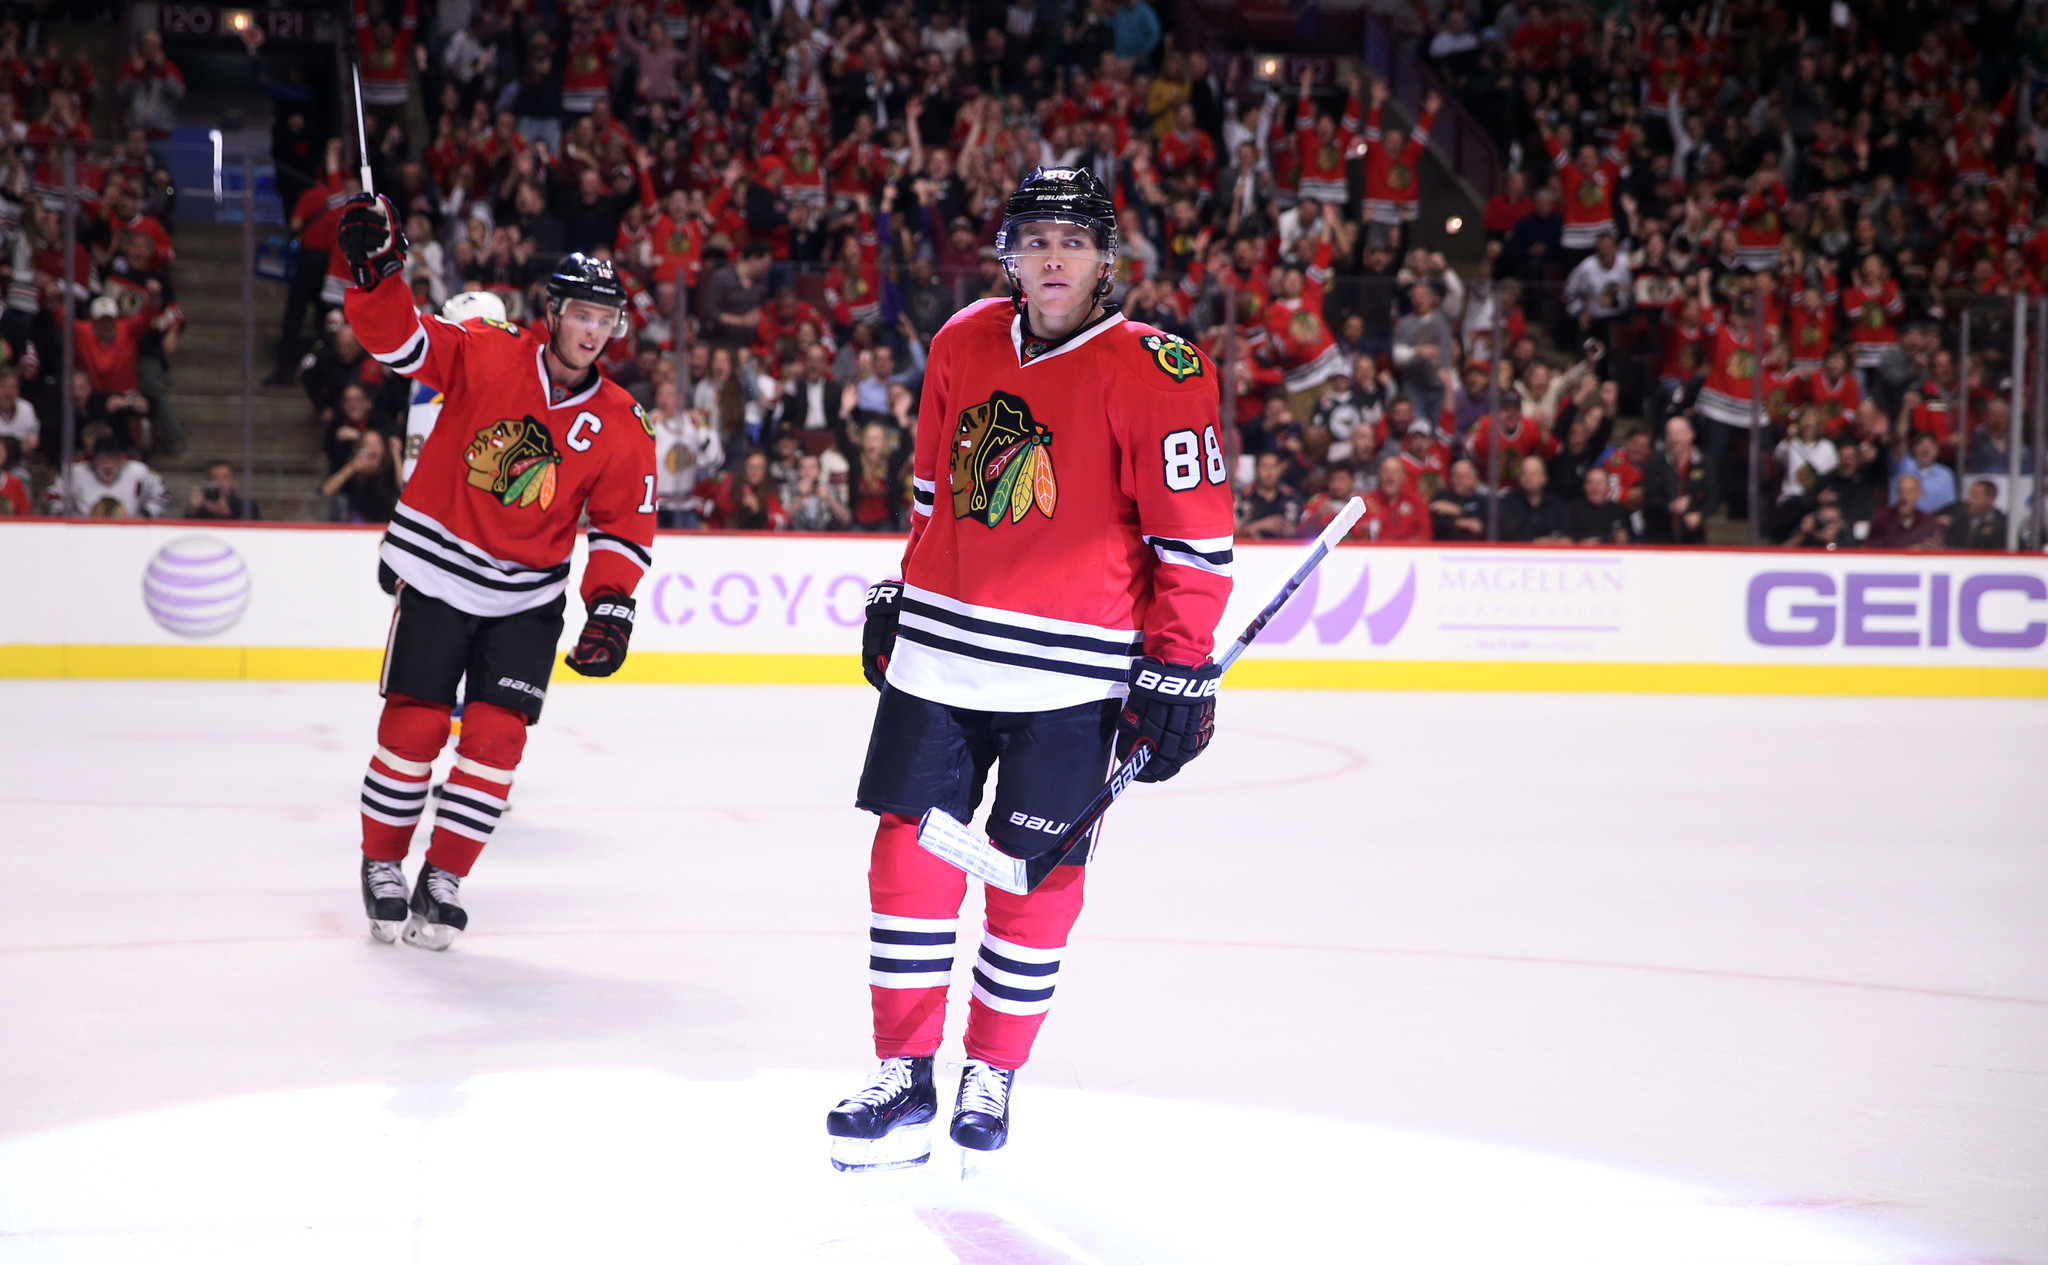 Ct-blackhawks-blues-winter-classic-20161231